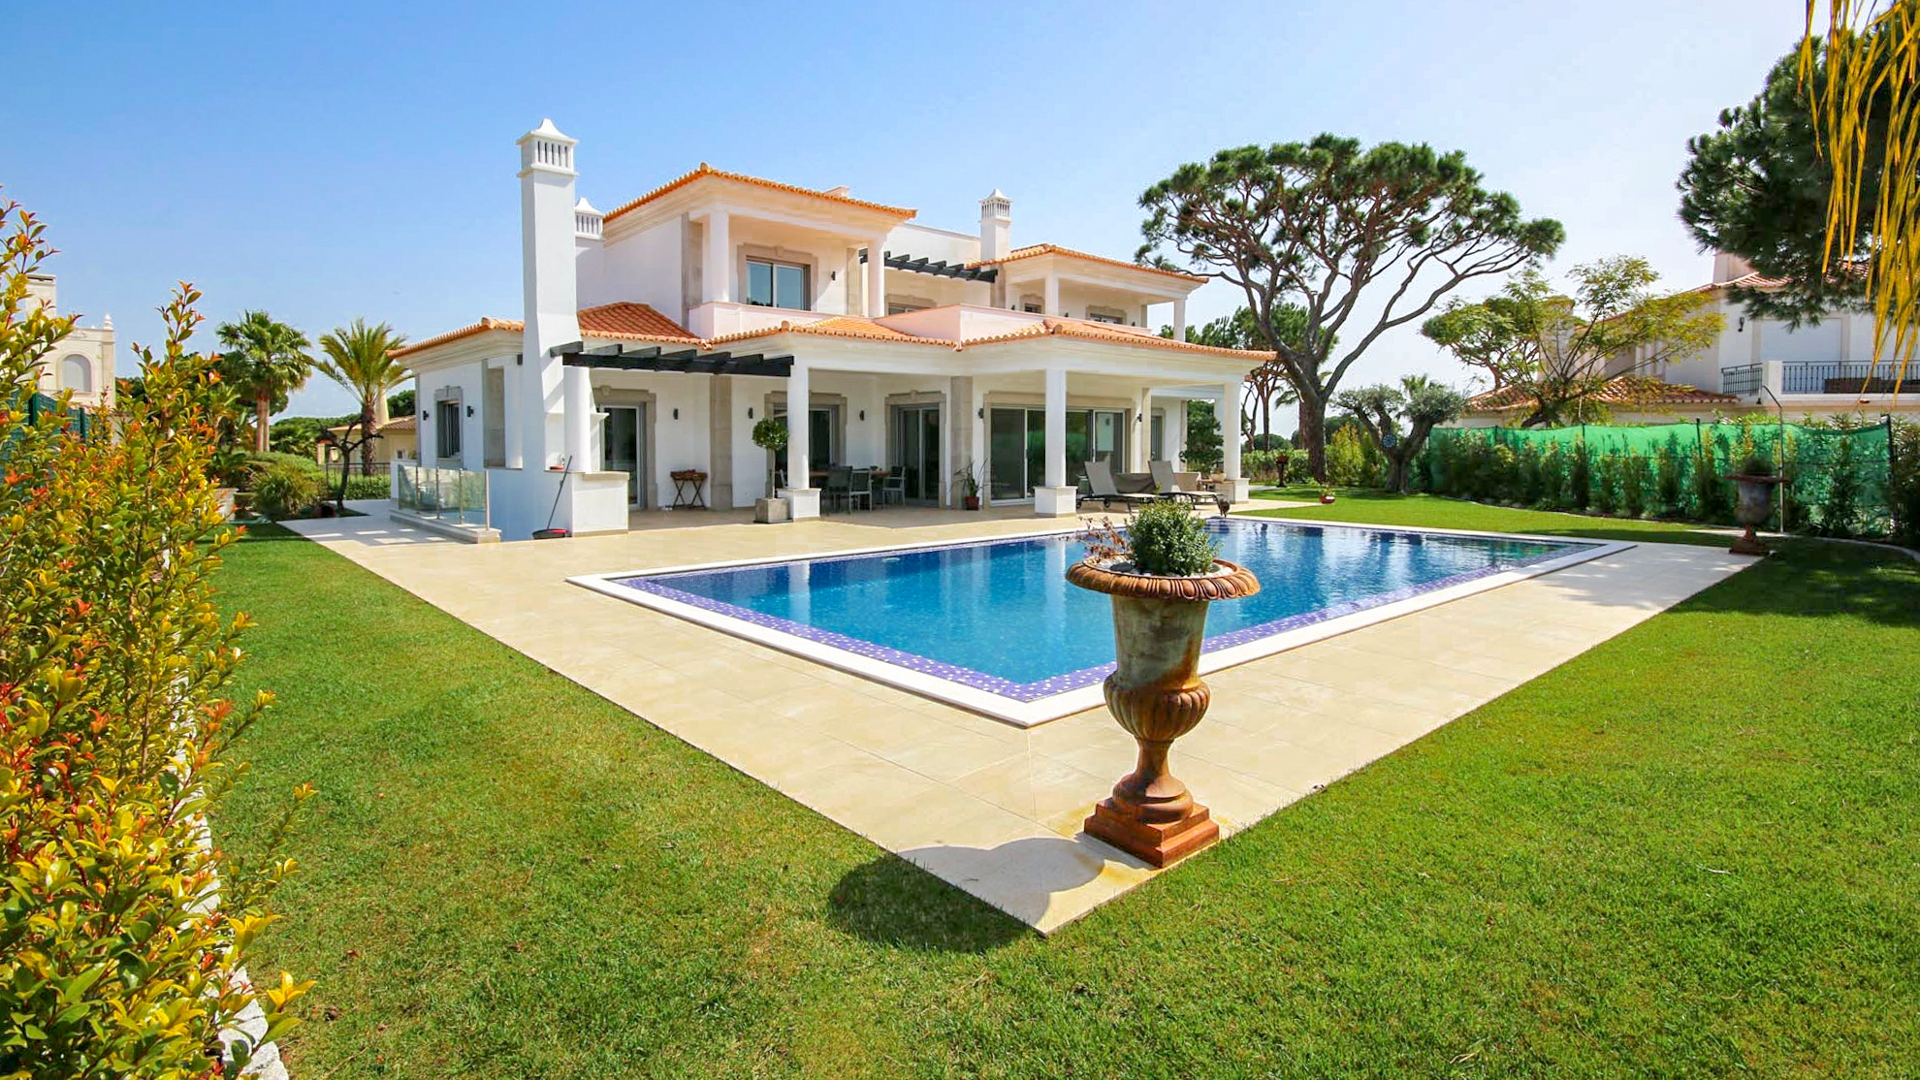 Immaculate 5 Bedroom Villa with Golf Views, Vila Sol, Vilamoura | PMR290 A 5 bedroom golf front villa finished to high standards with large basement with wine cellar and cinema room located in Vila Sol Golf Resort, close to Vilamoura